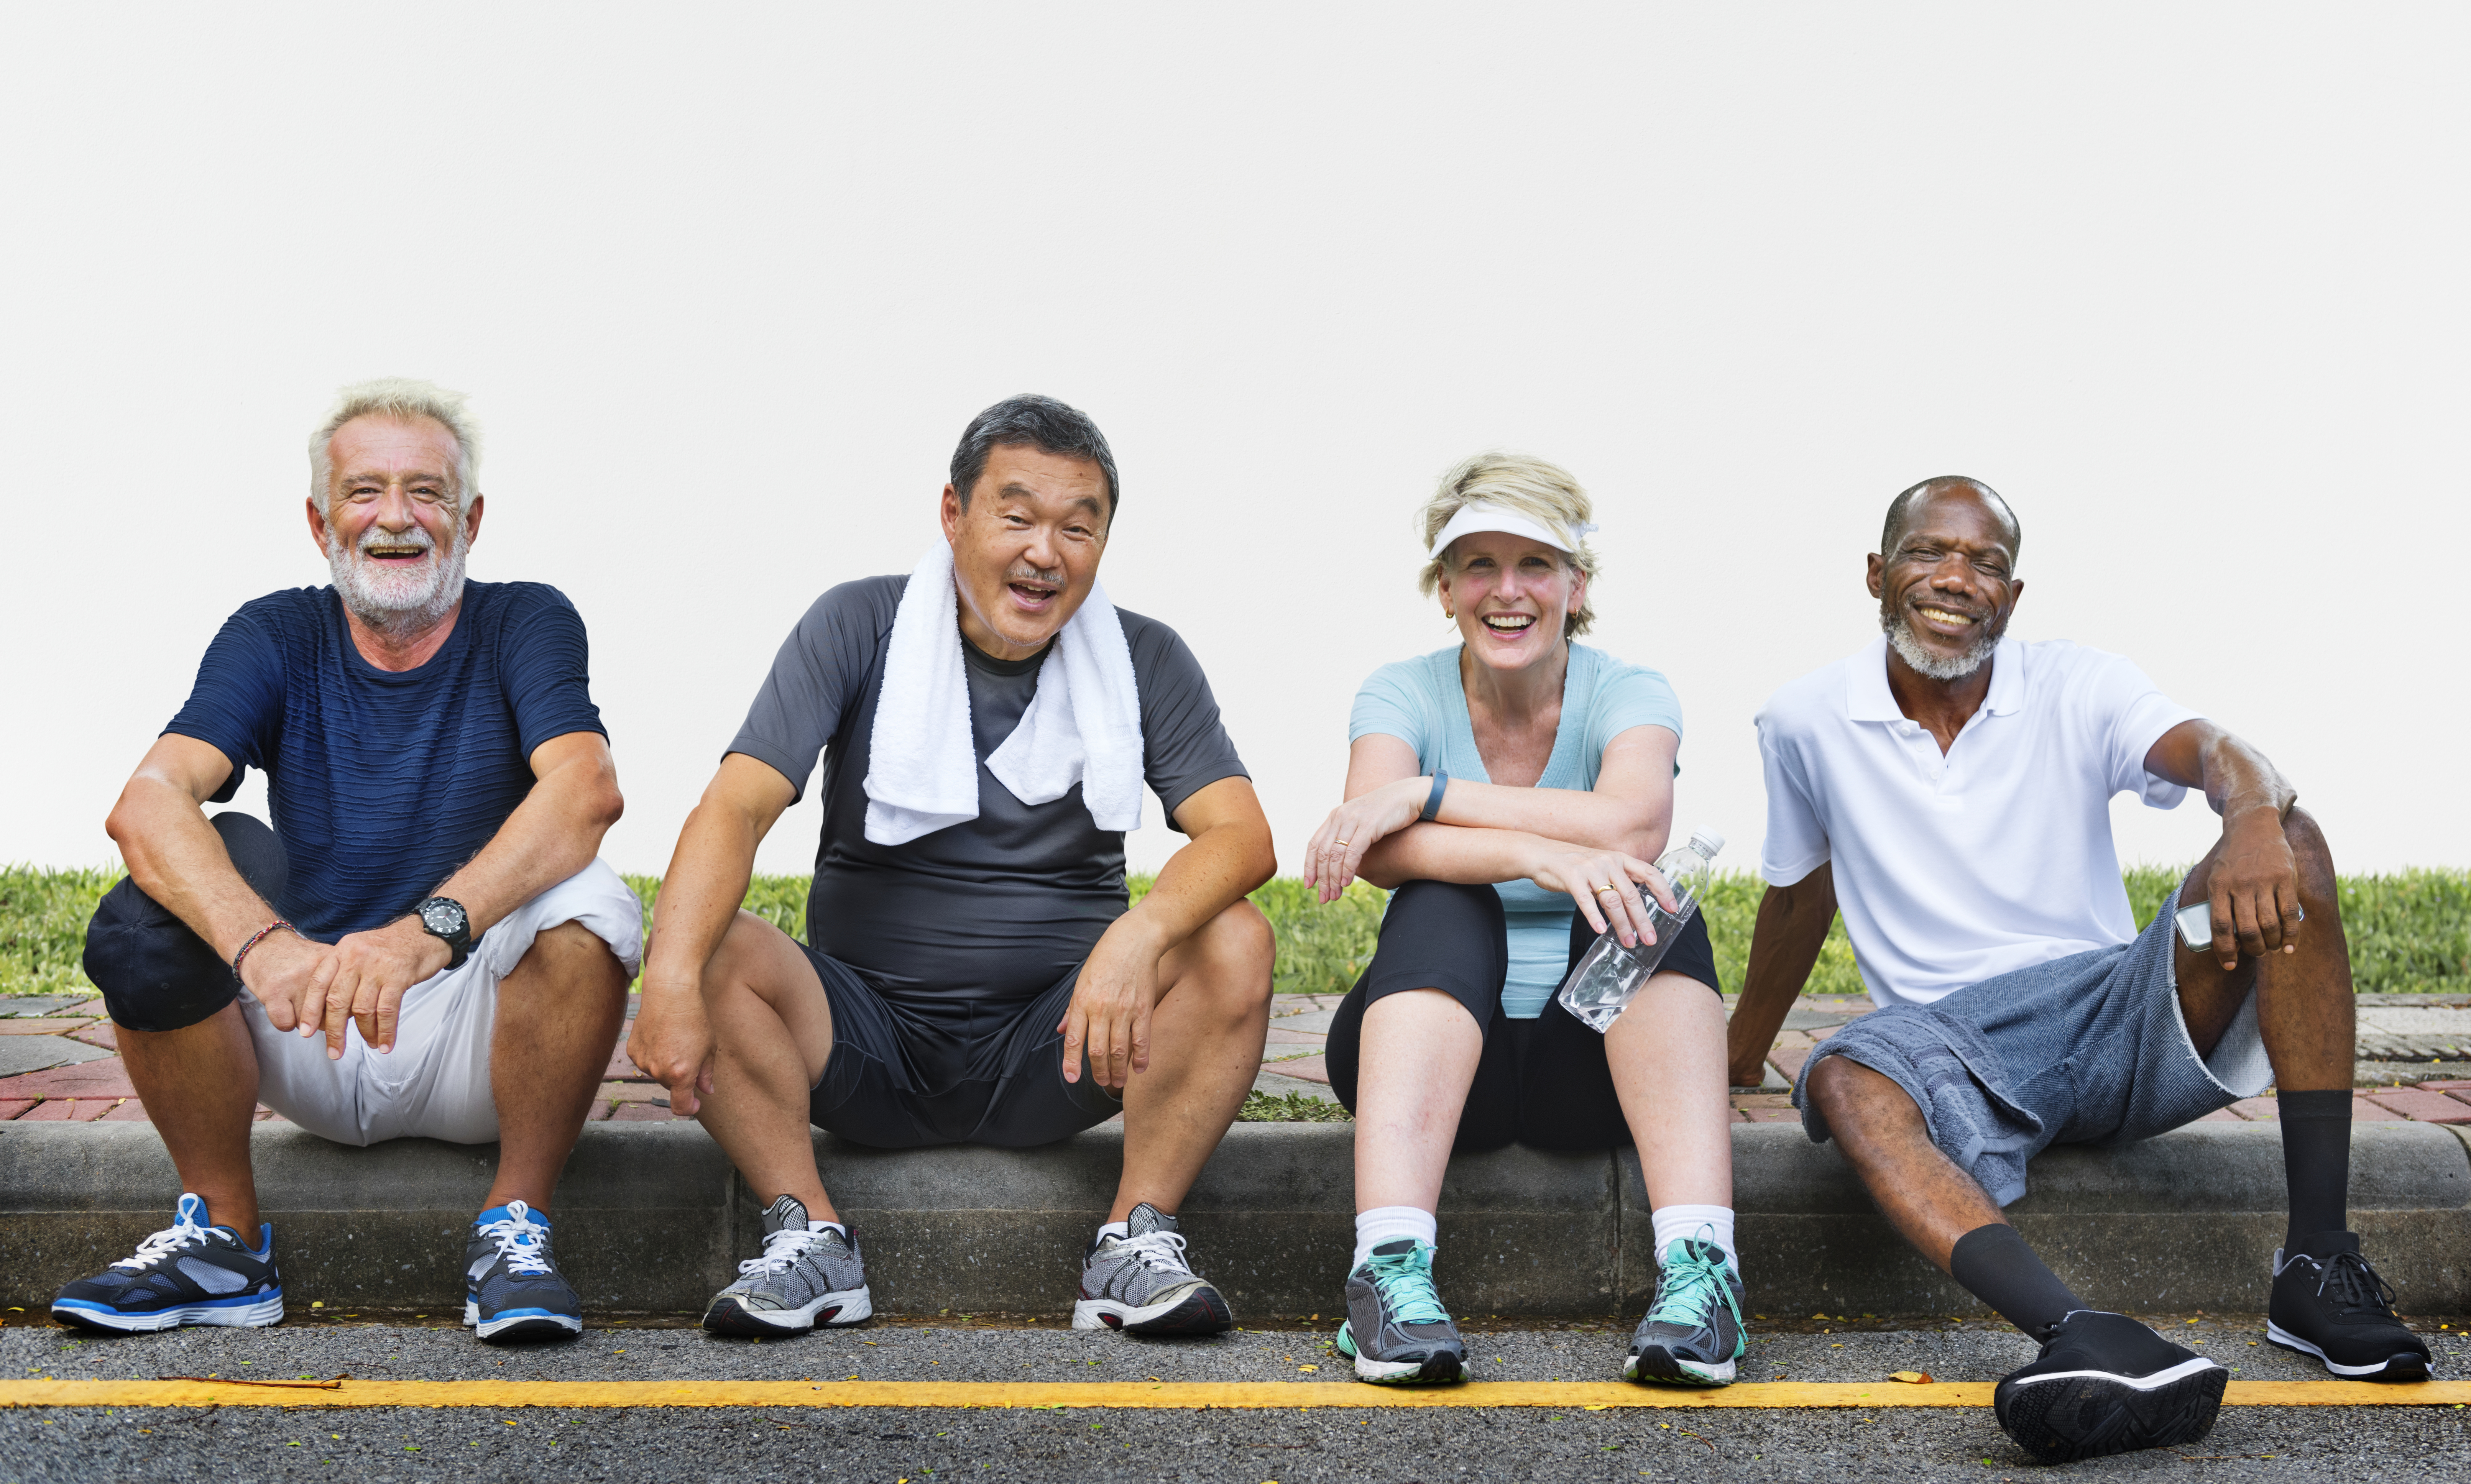 bigstock-Senior-Group-Friends-Exercise--